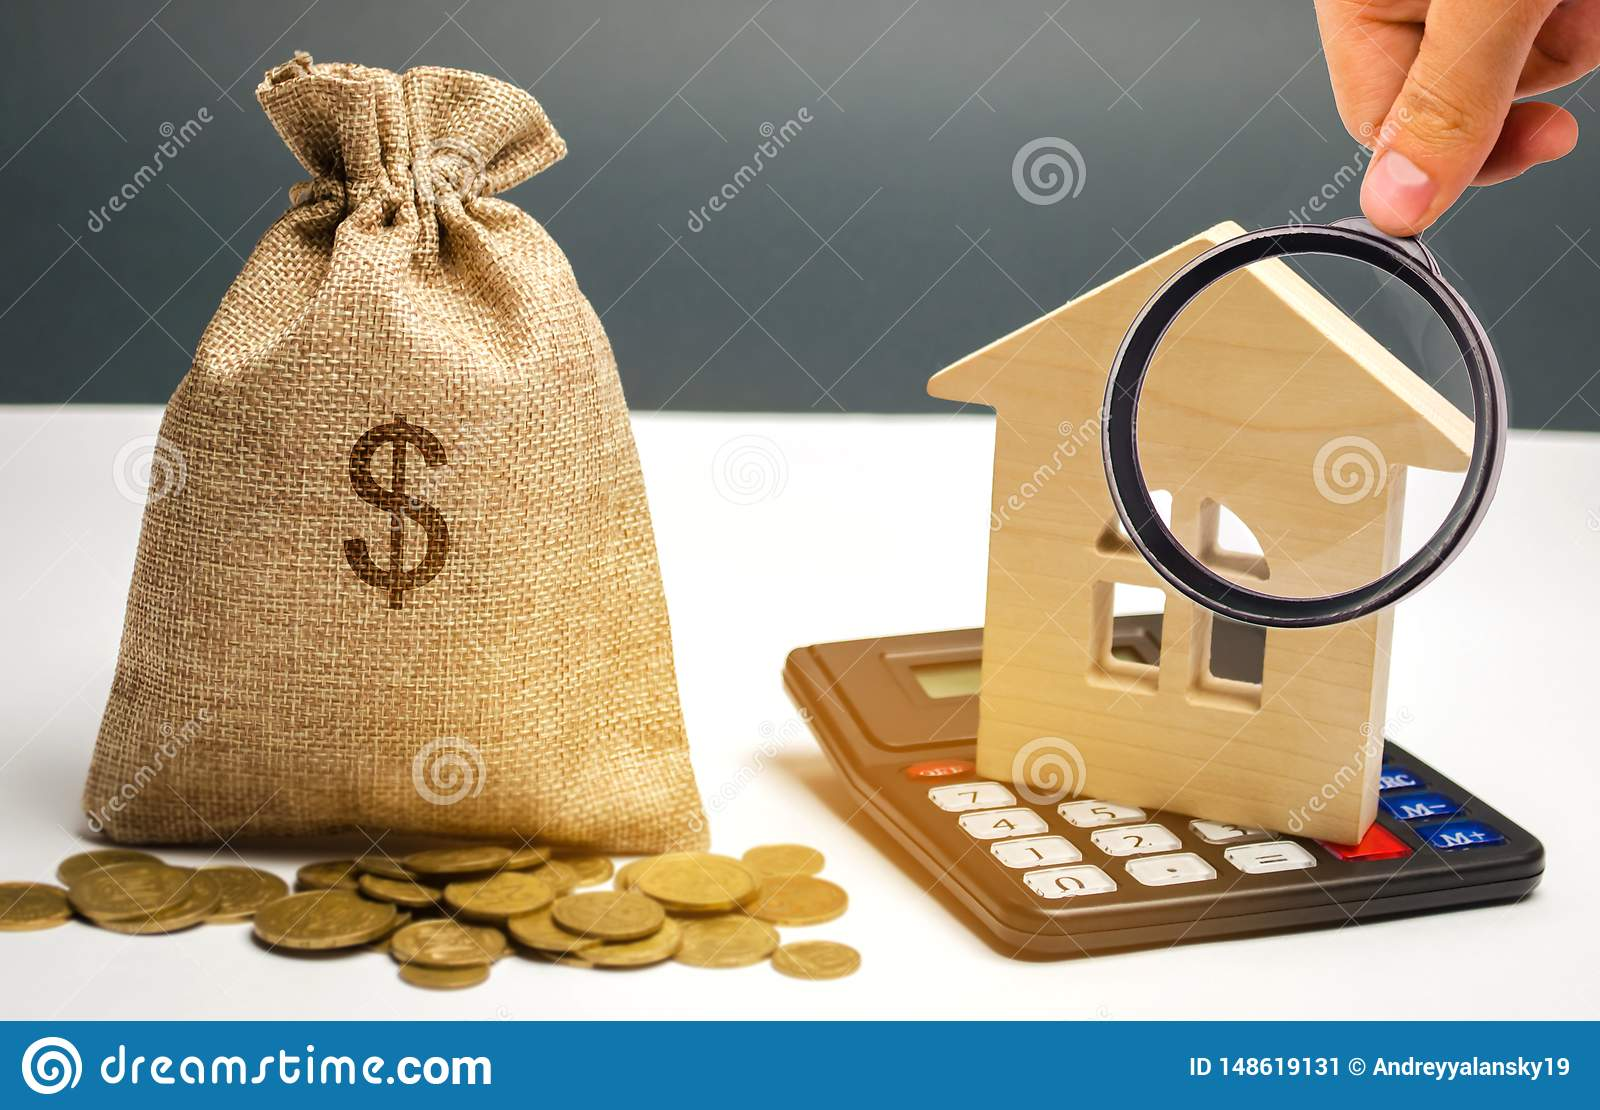 Bag with money and dollar sign and wooden houses. Financing in the country. Investing money in real estate. Saving and